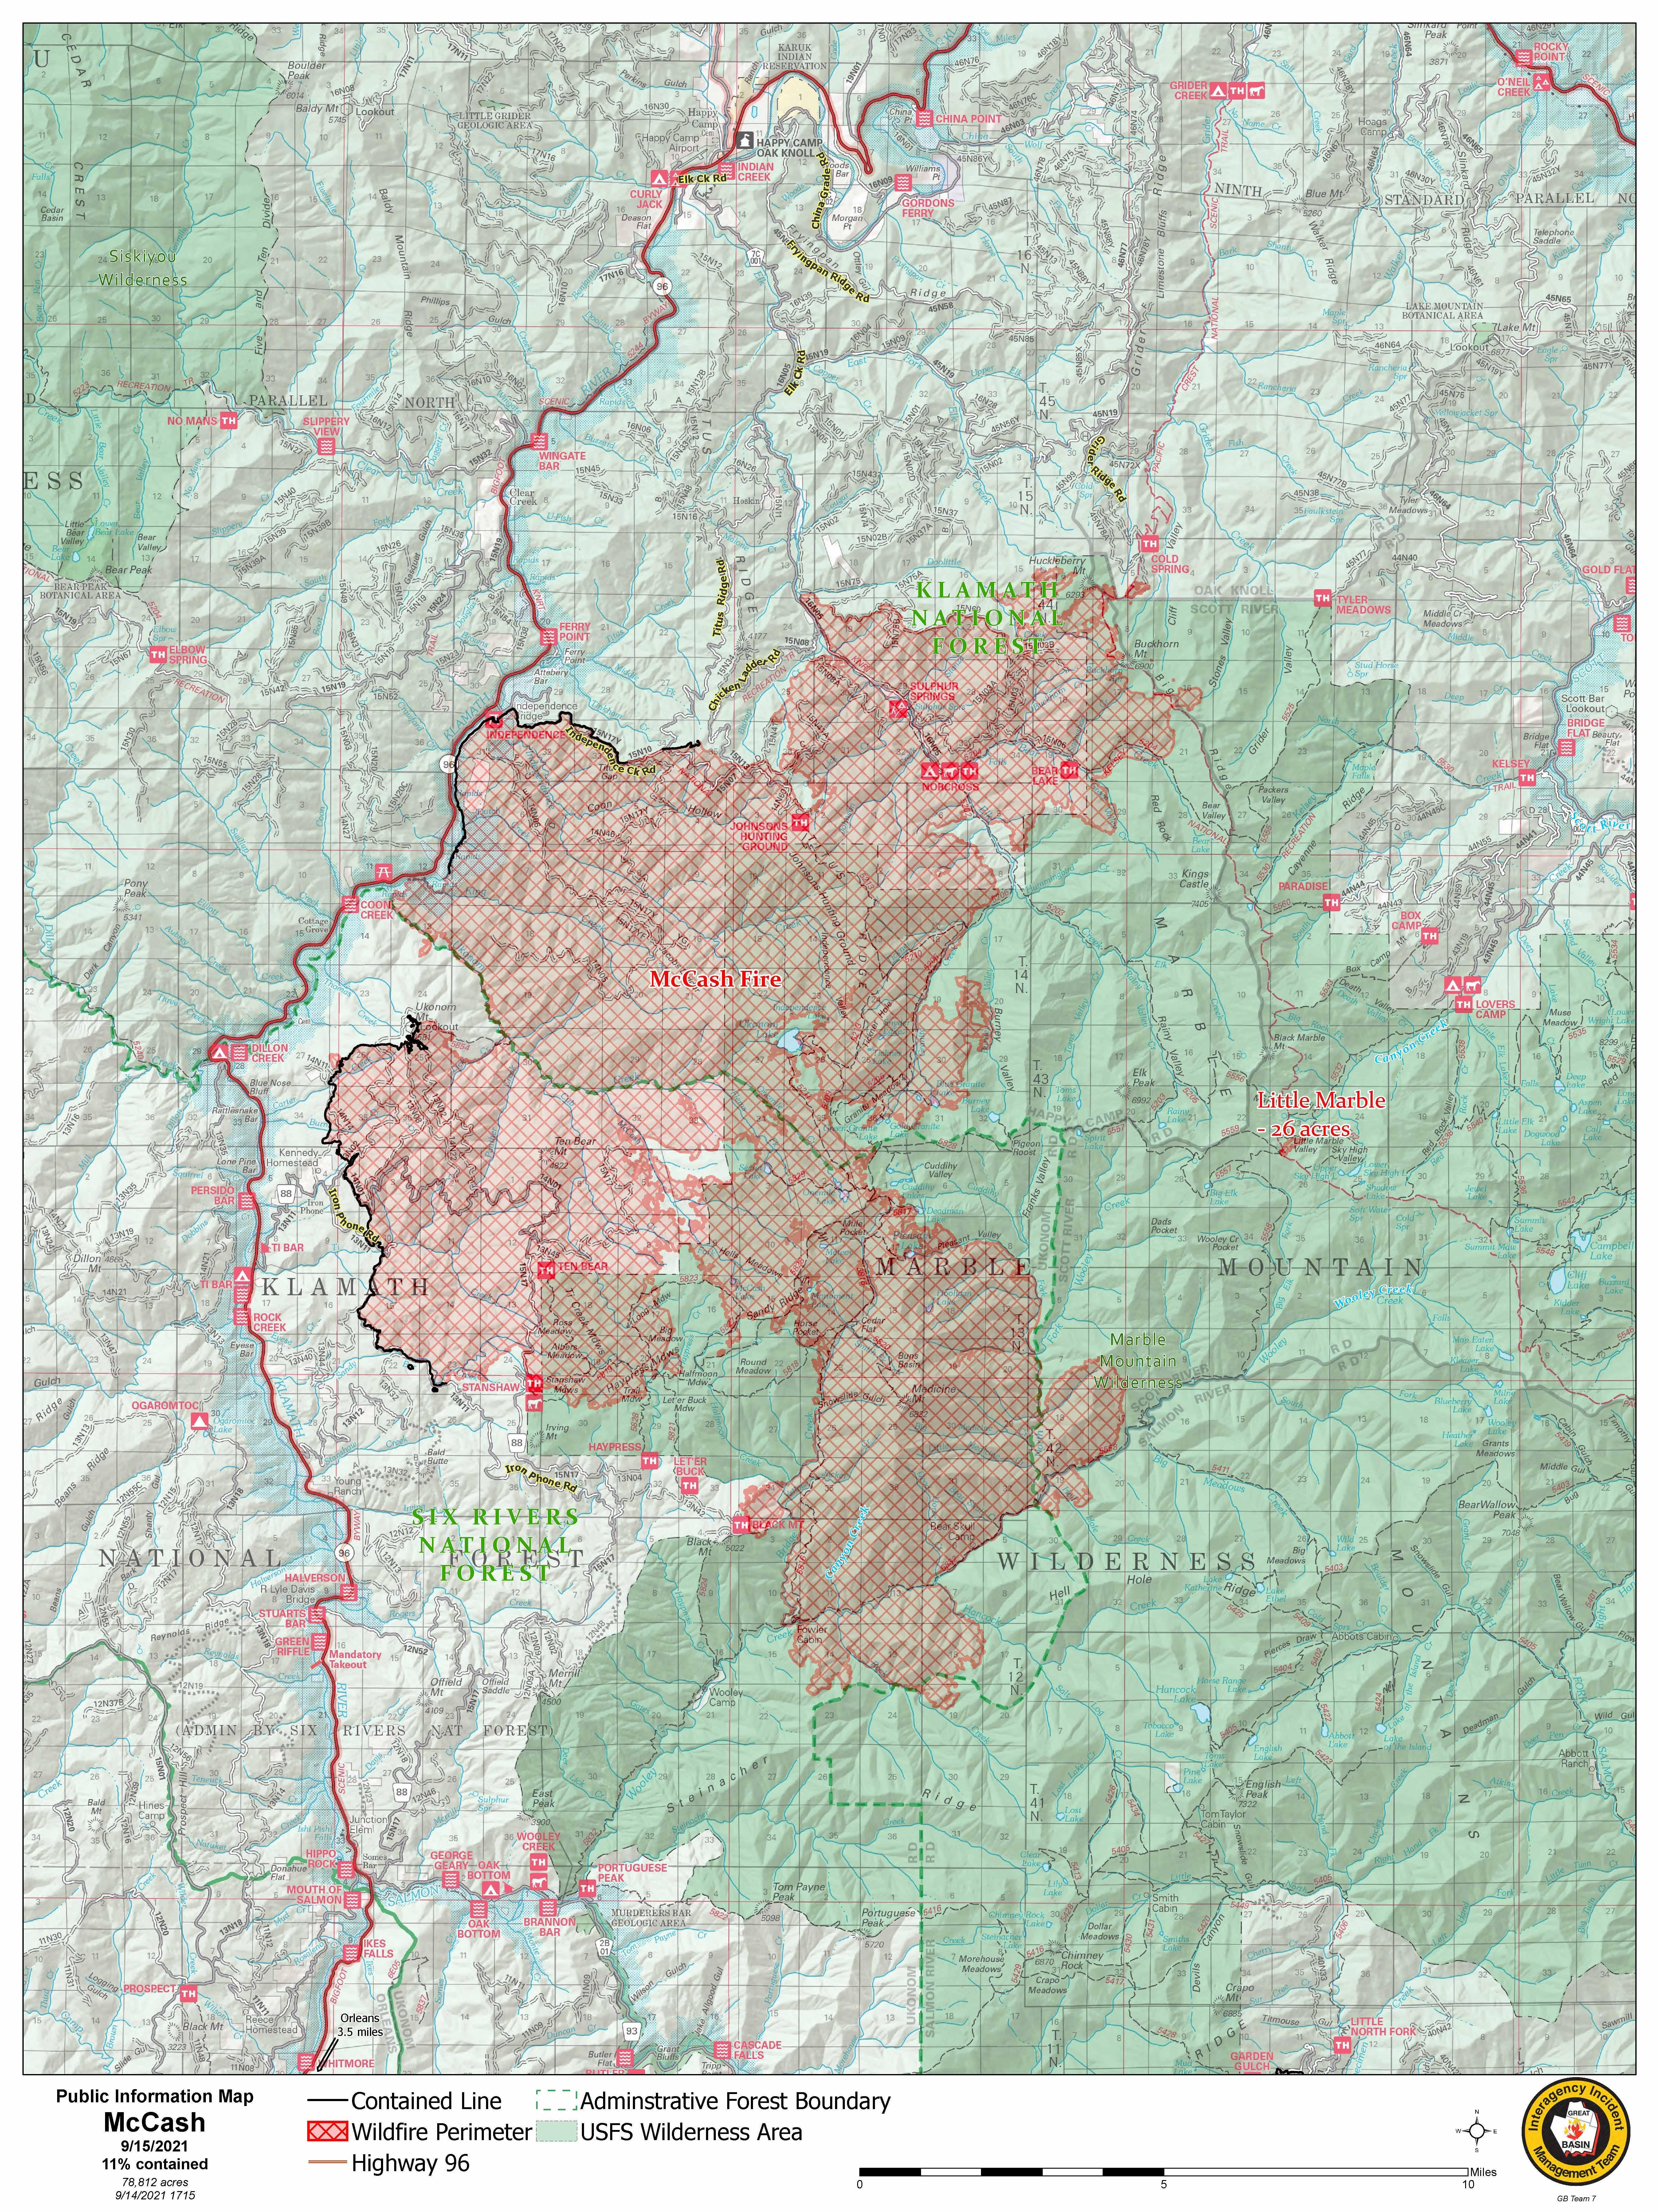 Map showing McCash Fire and Little Marble Fire